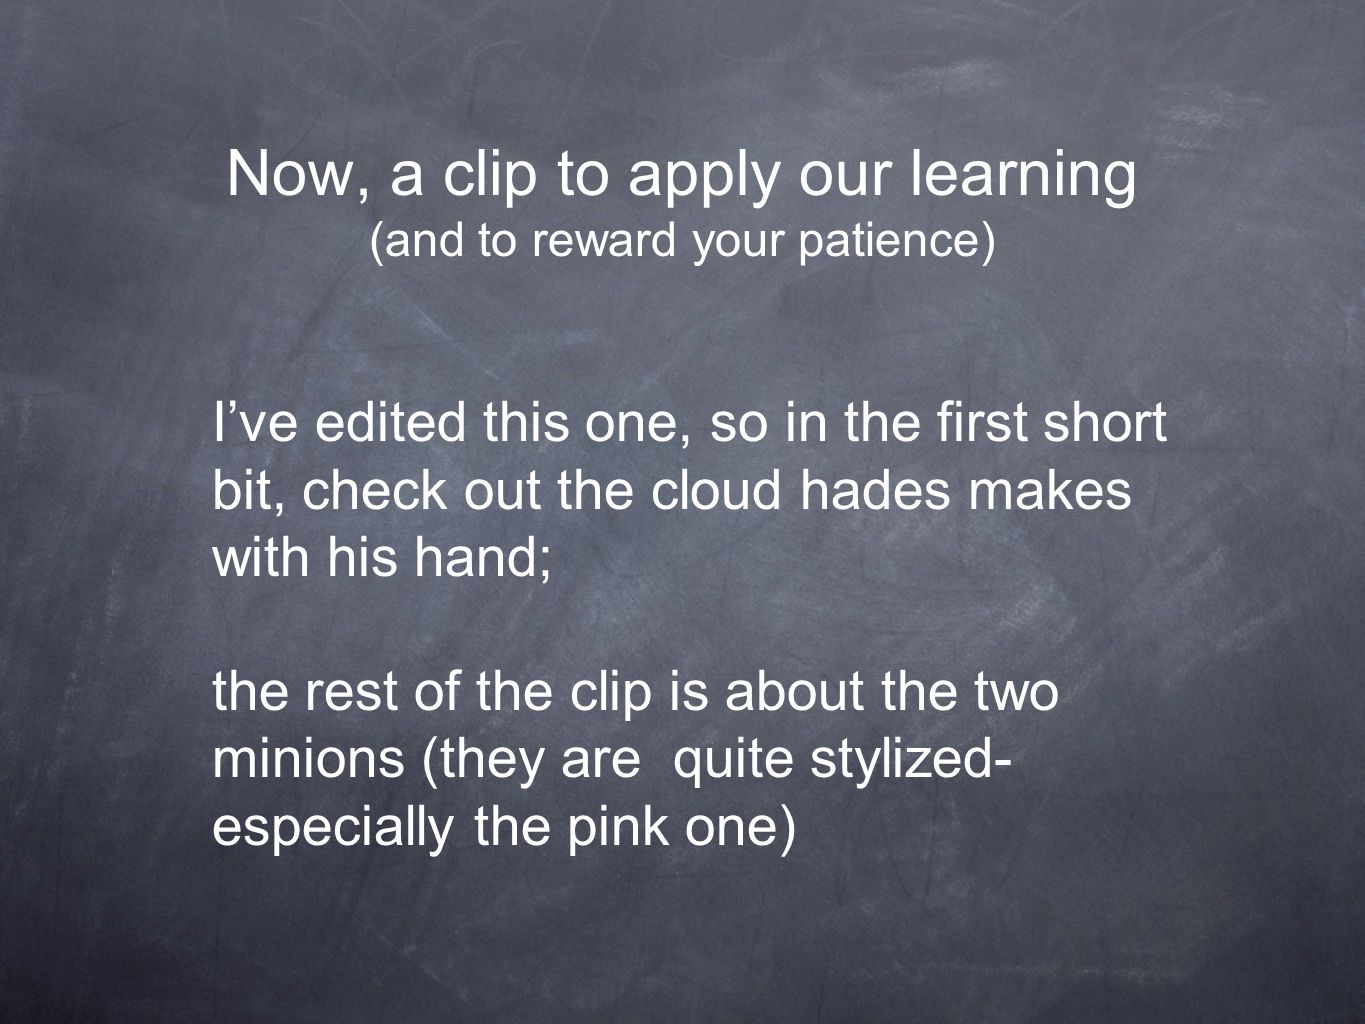 Now, a clip to apply our learning (and to reward your patience)